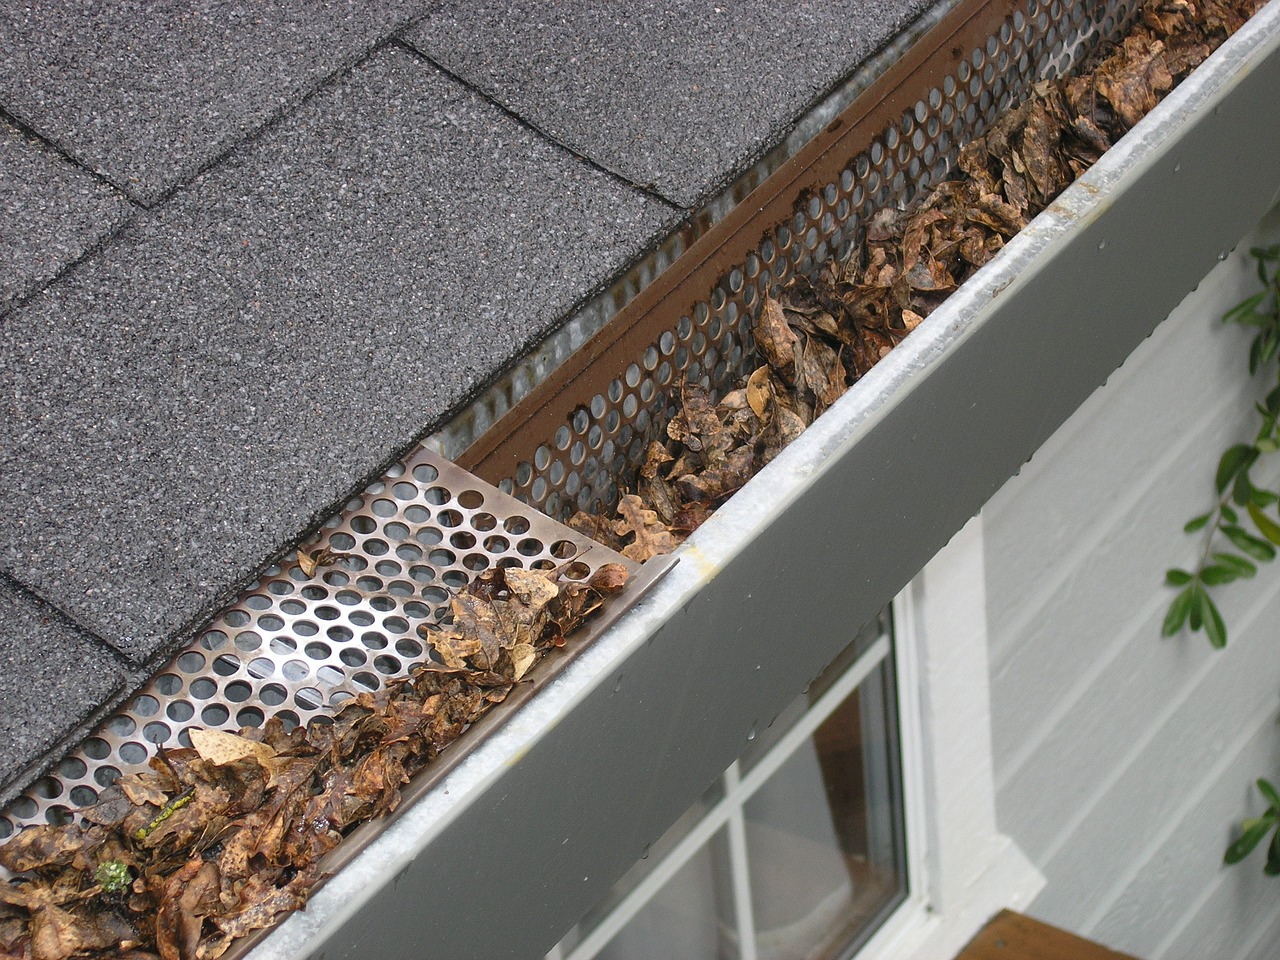 Gutters of a persons home